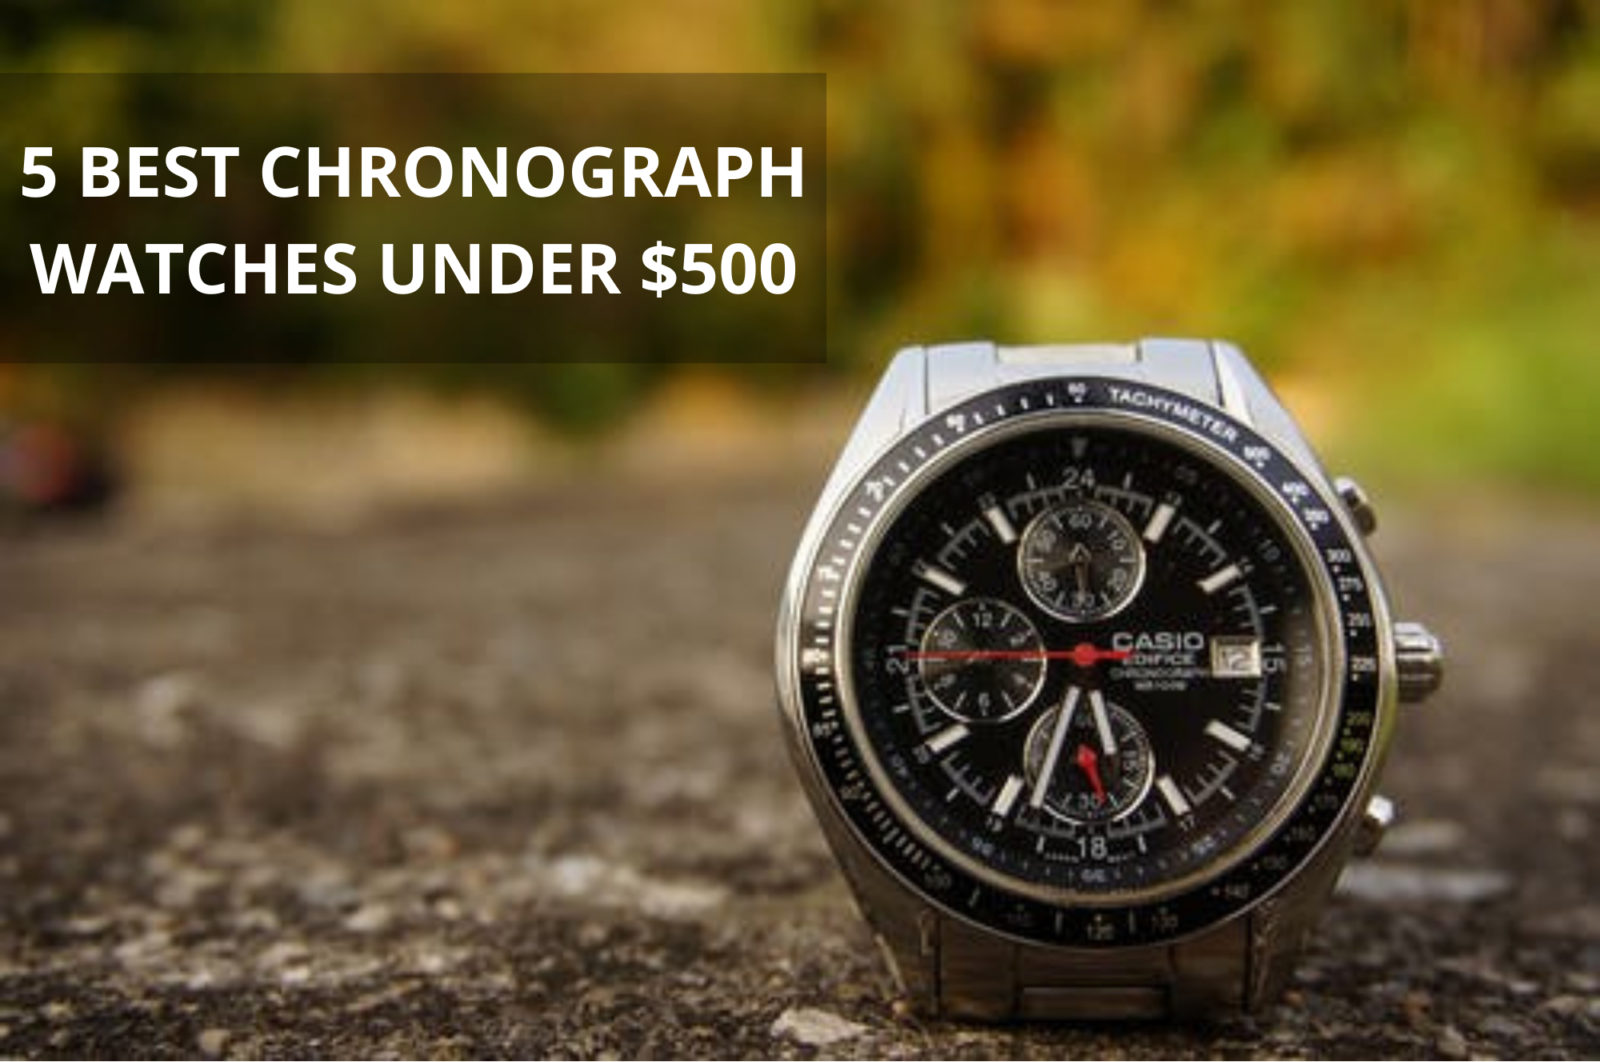 5 Best Chronograph Watches under $500